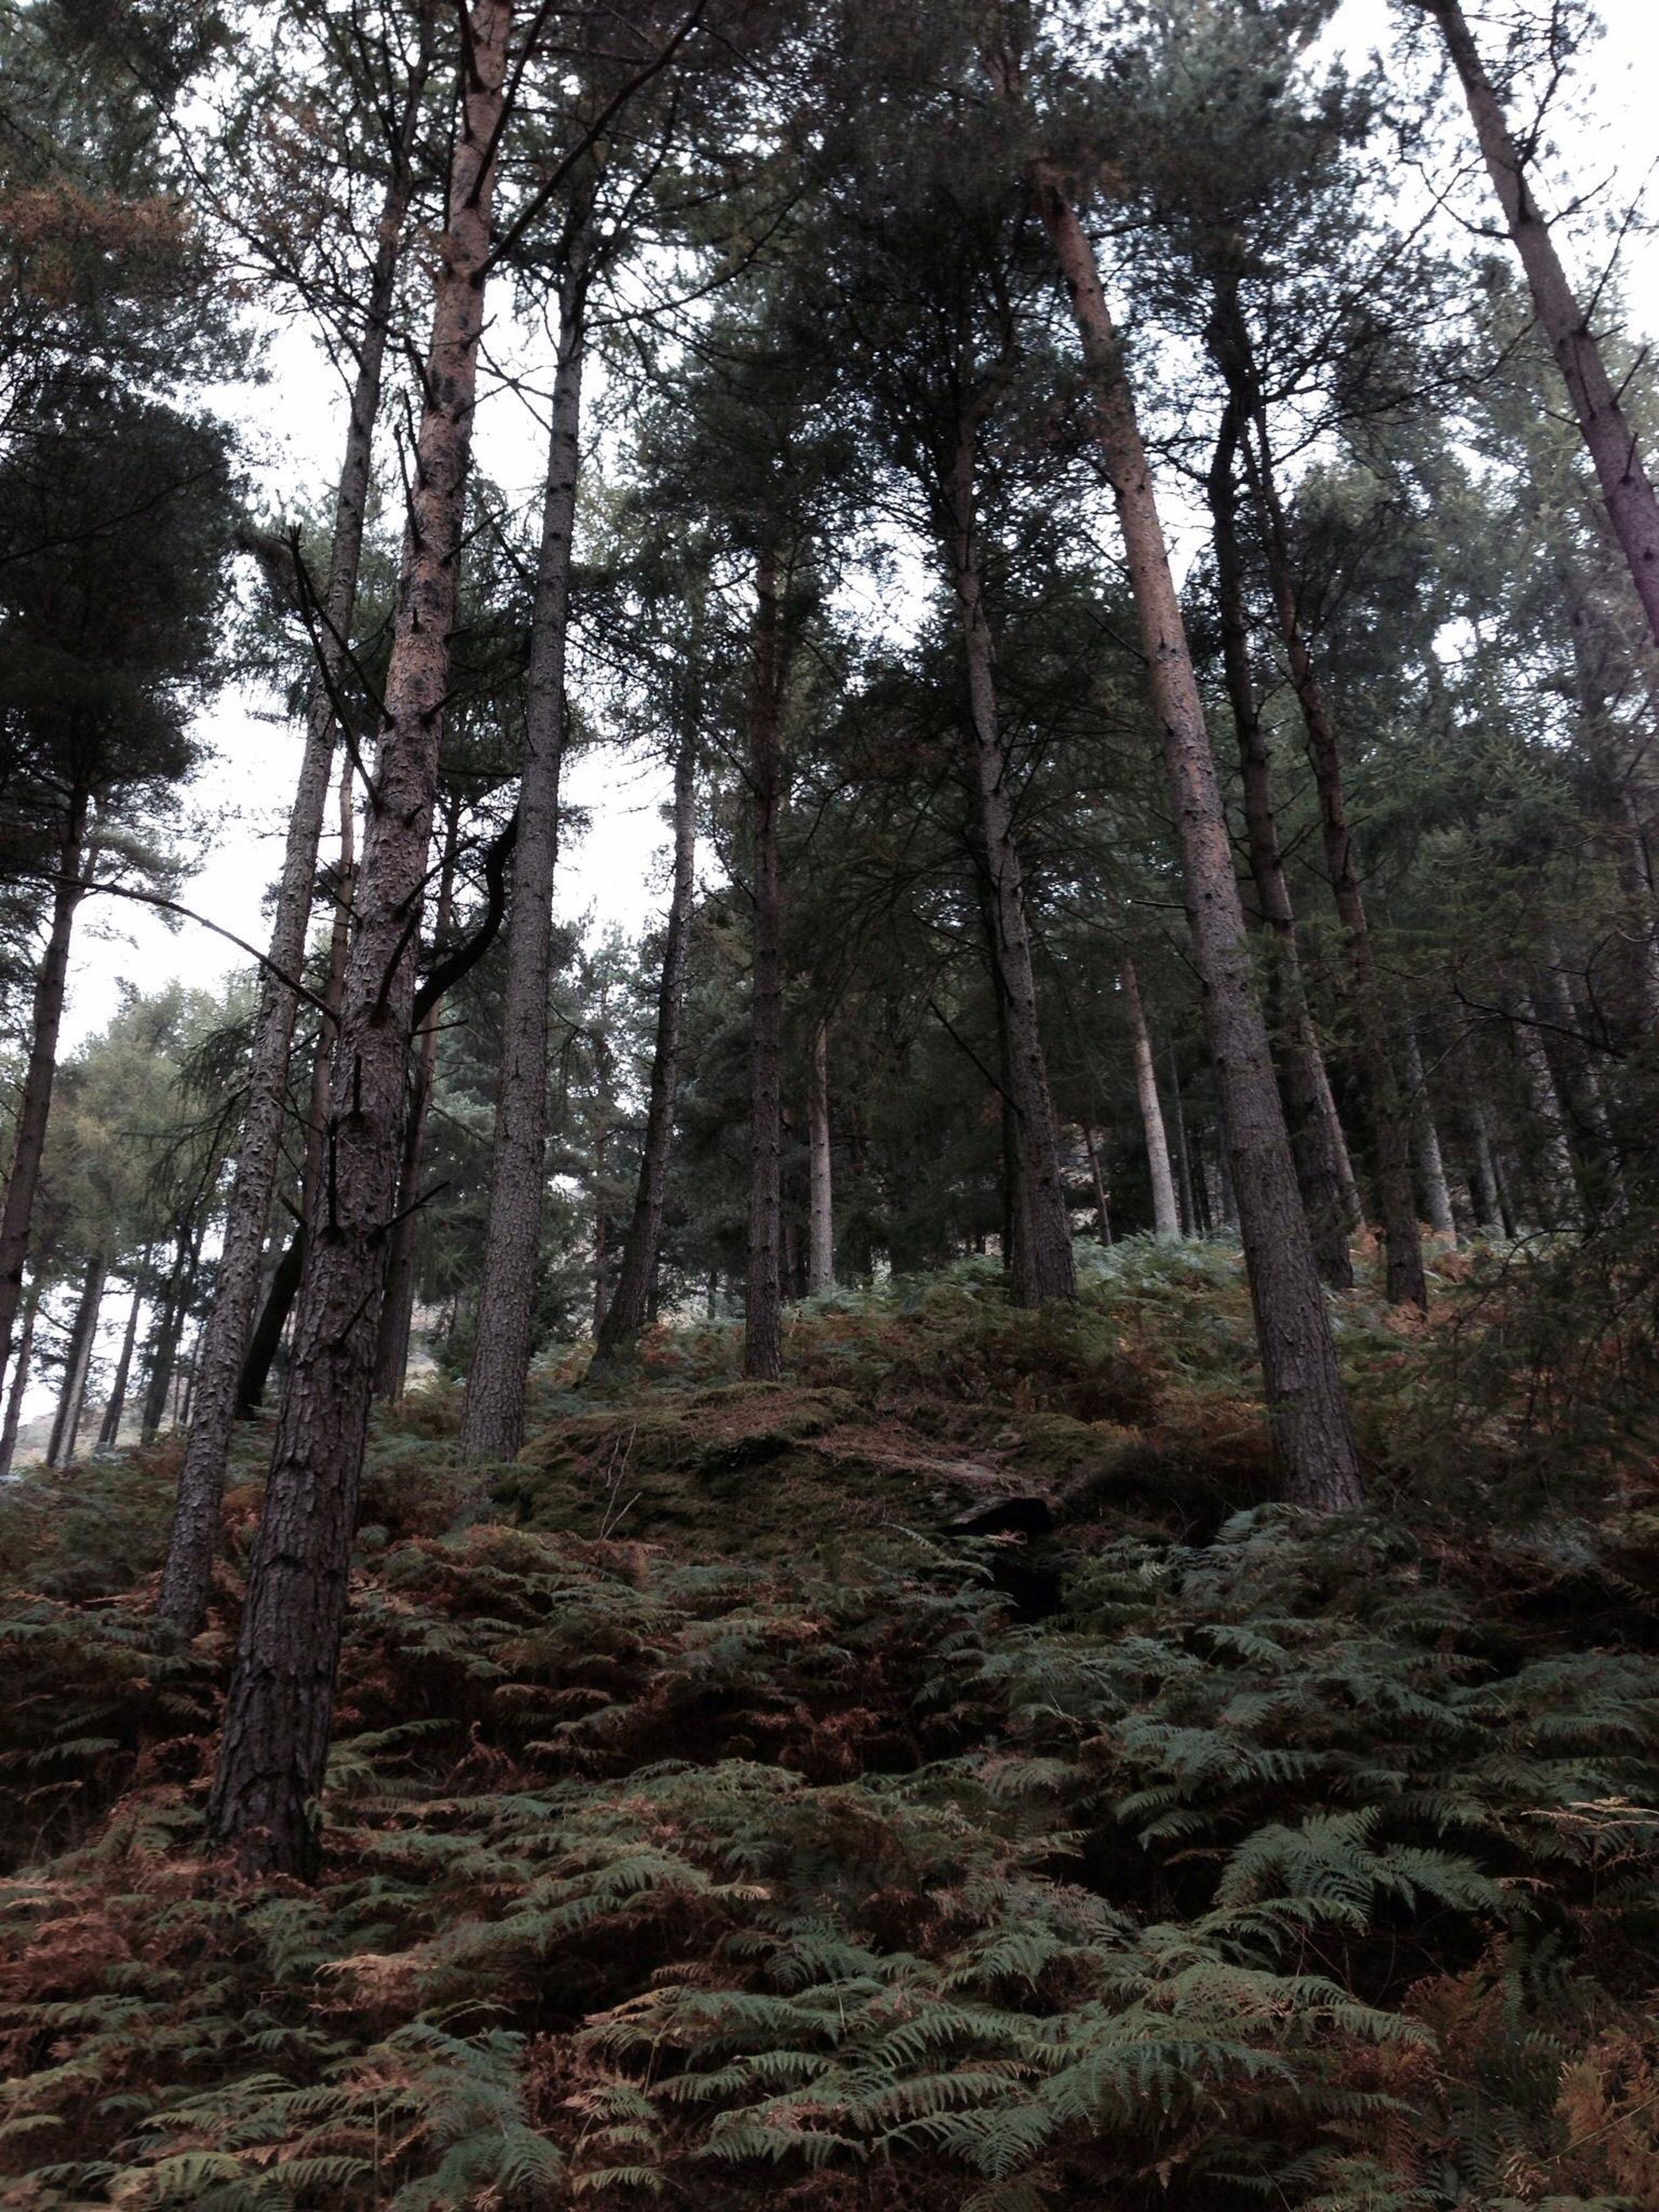 tree, forest, tree trunk, tranquility, woodland, growth, nature, tranquil scene, low angle view, beauty in nature, scenics, non-urban scene, branch, day, outdoors, landscape, no people, tall - high, idyllic, non urban scene